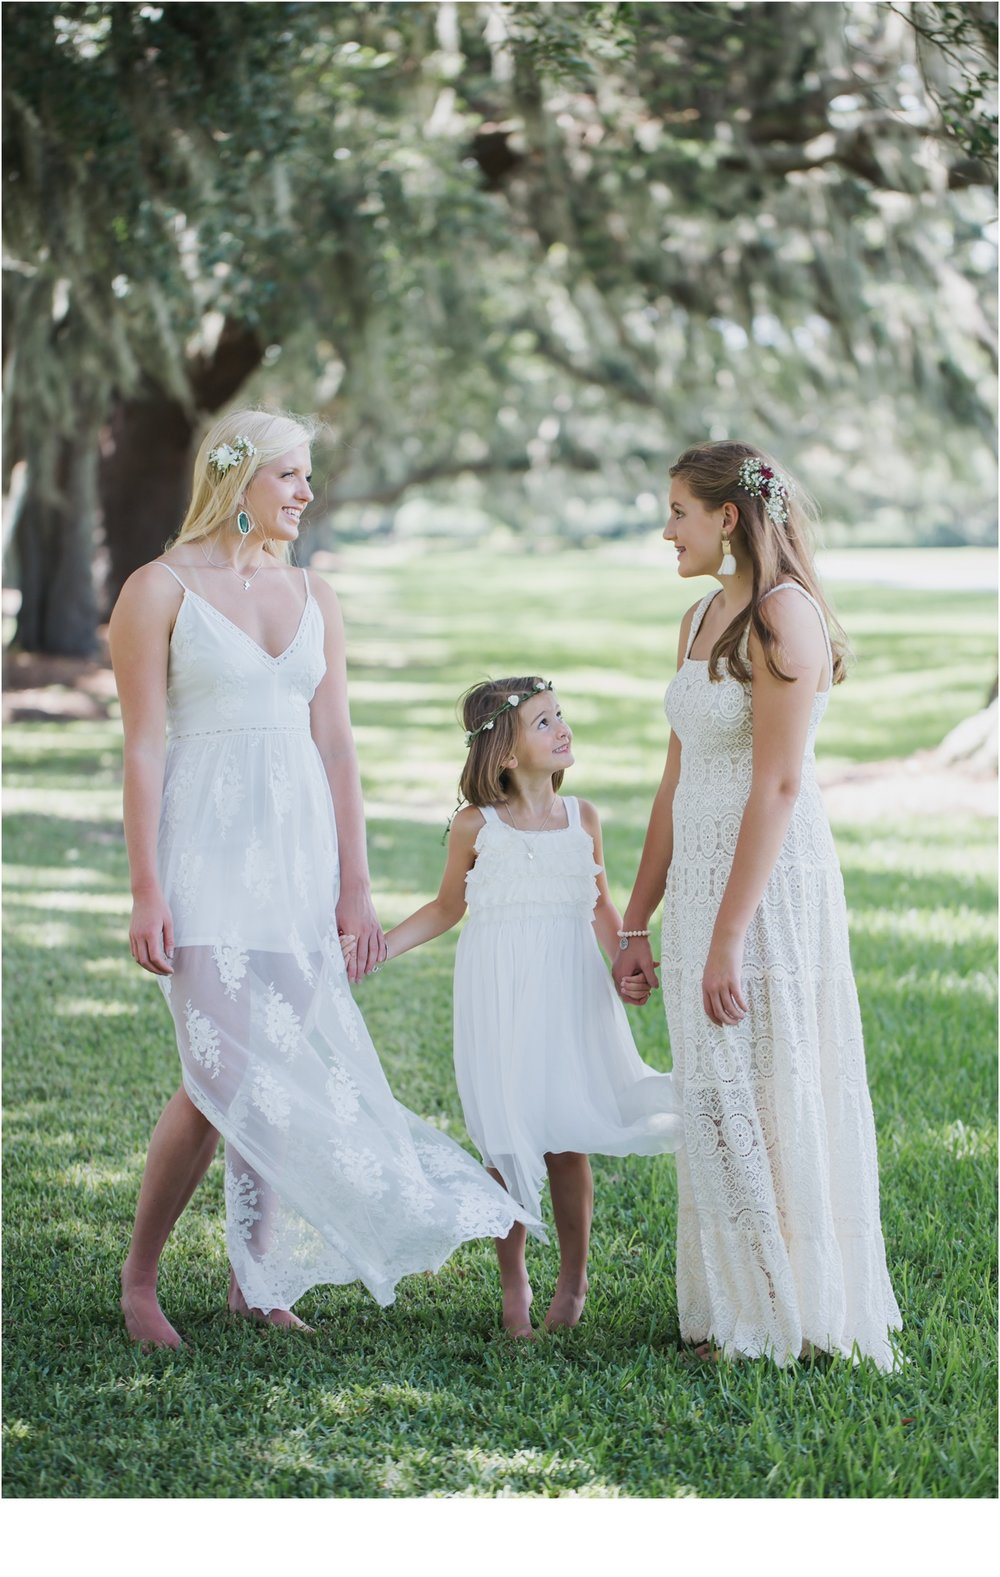 Rainey_Gregg_Photography_St._Simons_Island_Georgia_California_Wedding_Portrait_Photography_1105.jpg